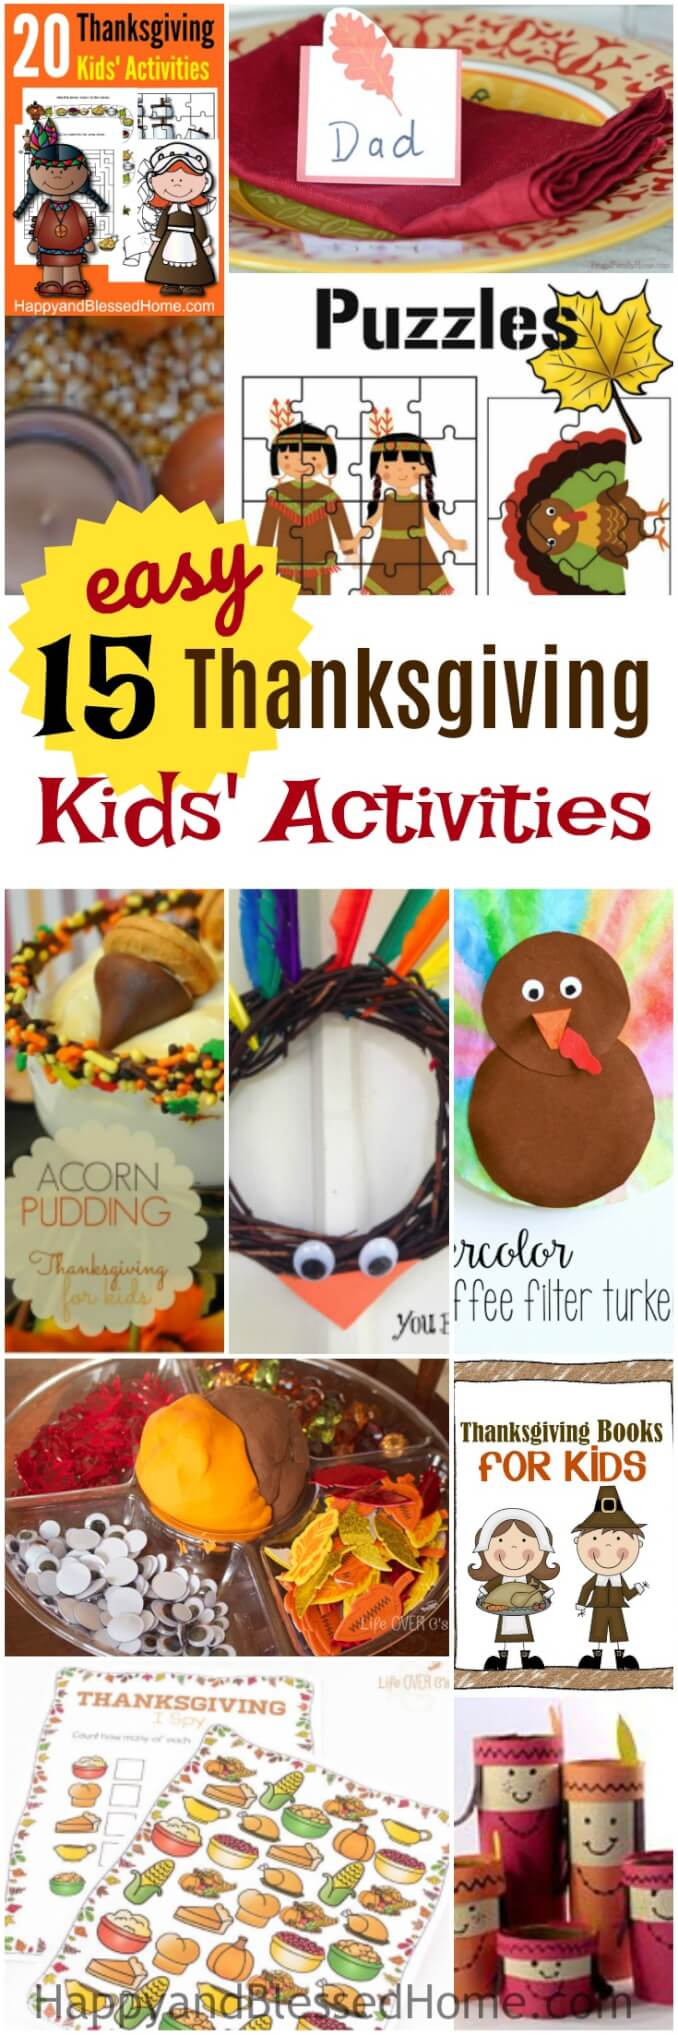 "FREE 15 Easy Thanksgiving Kids' Activities and Crafts - toilet paper crafts, coffee filter crafts, a turkey wreath, a holiday acorn pudding, a sensory and play-doh bin, and loads of free printables with puzzles, coloring, mazes, matching, red and write, ""I Spy"" game, board game, and more. Keep the kids busy while you cook the Thanksgiving Day Meal."